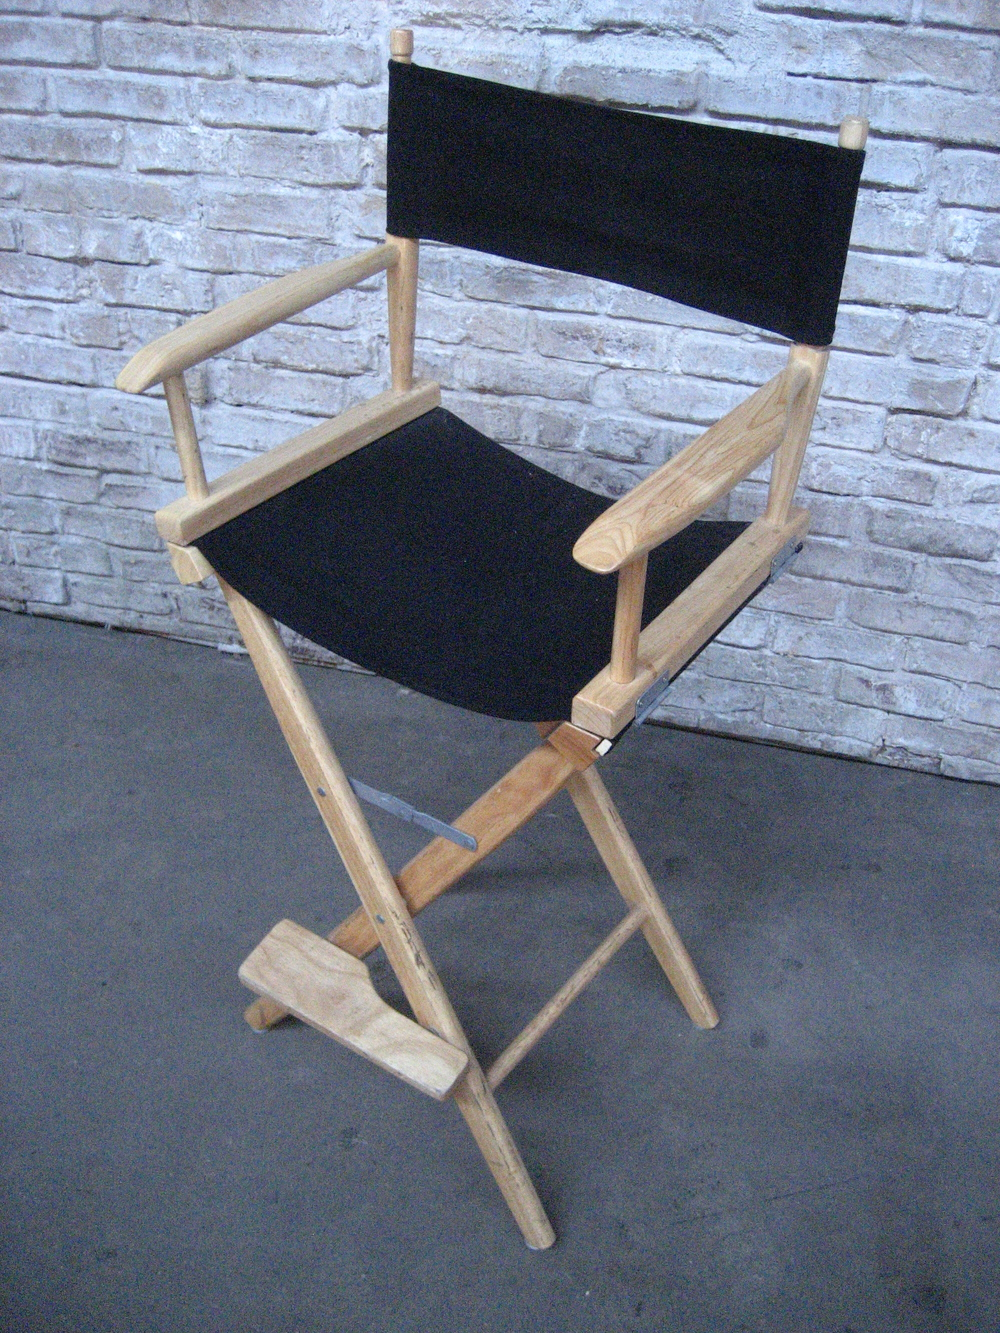 Directors Chair Black and Light Wood $40